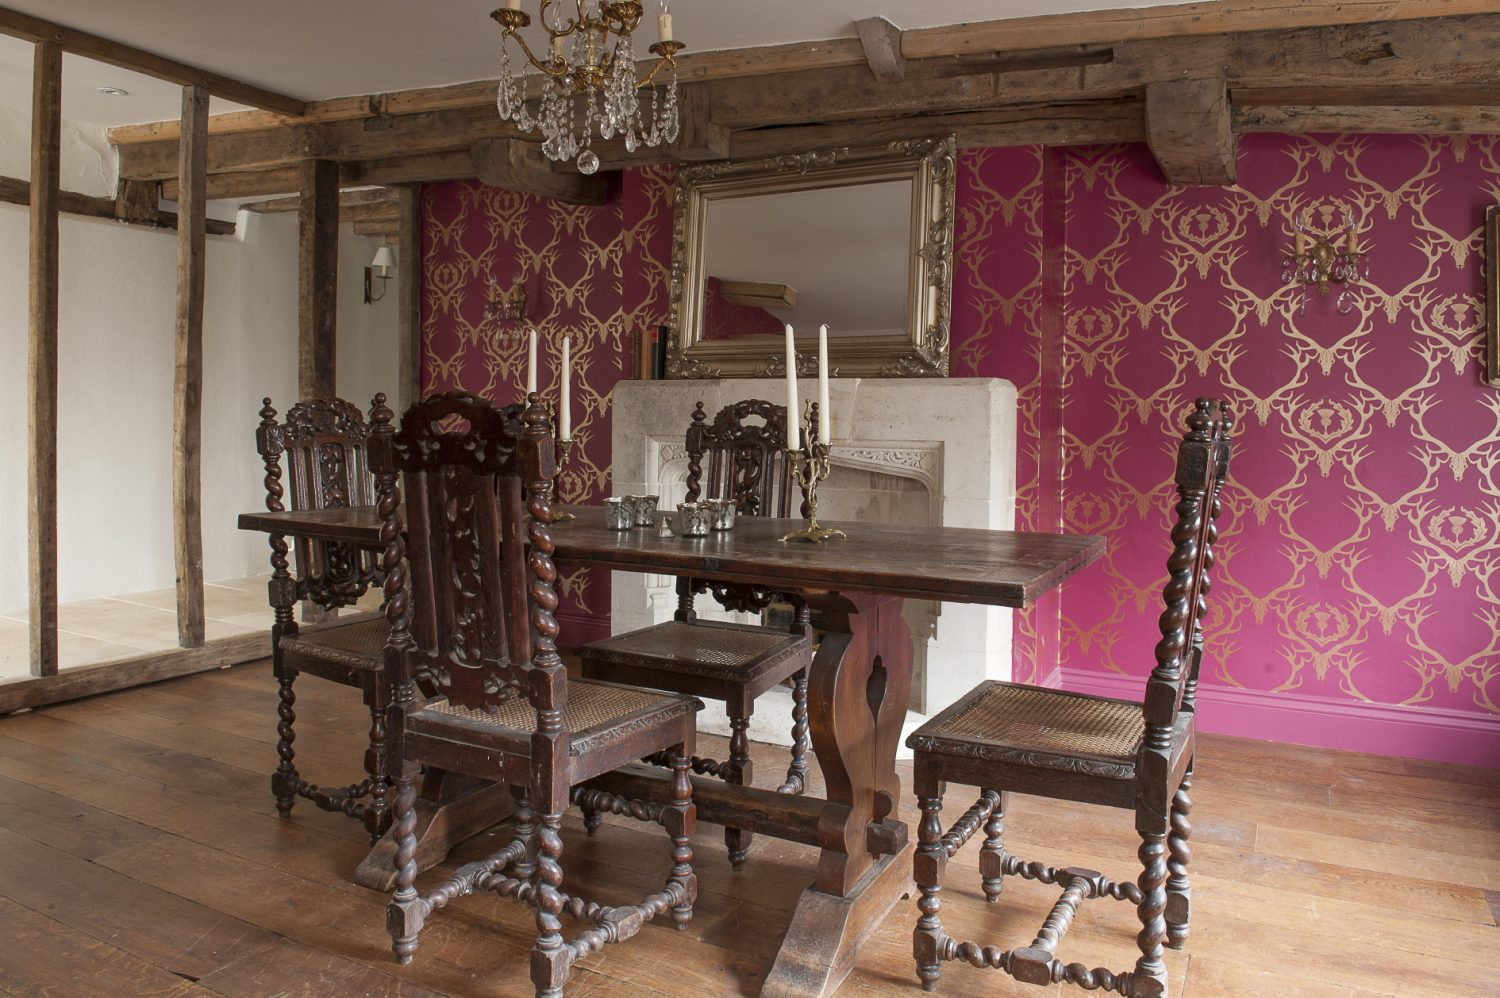 The heavily beamed dining room across the hall from the kitchen now has a distinctly baronial feel